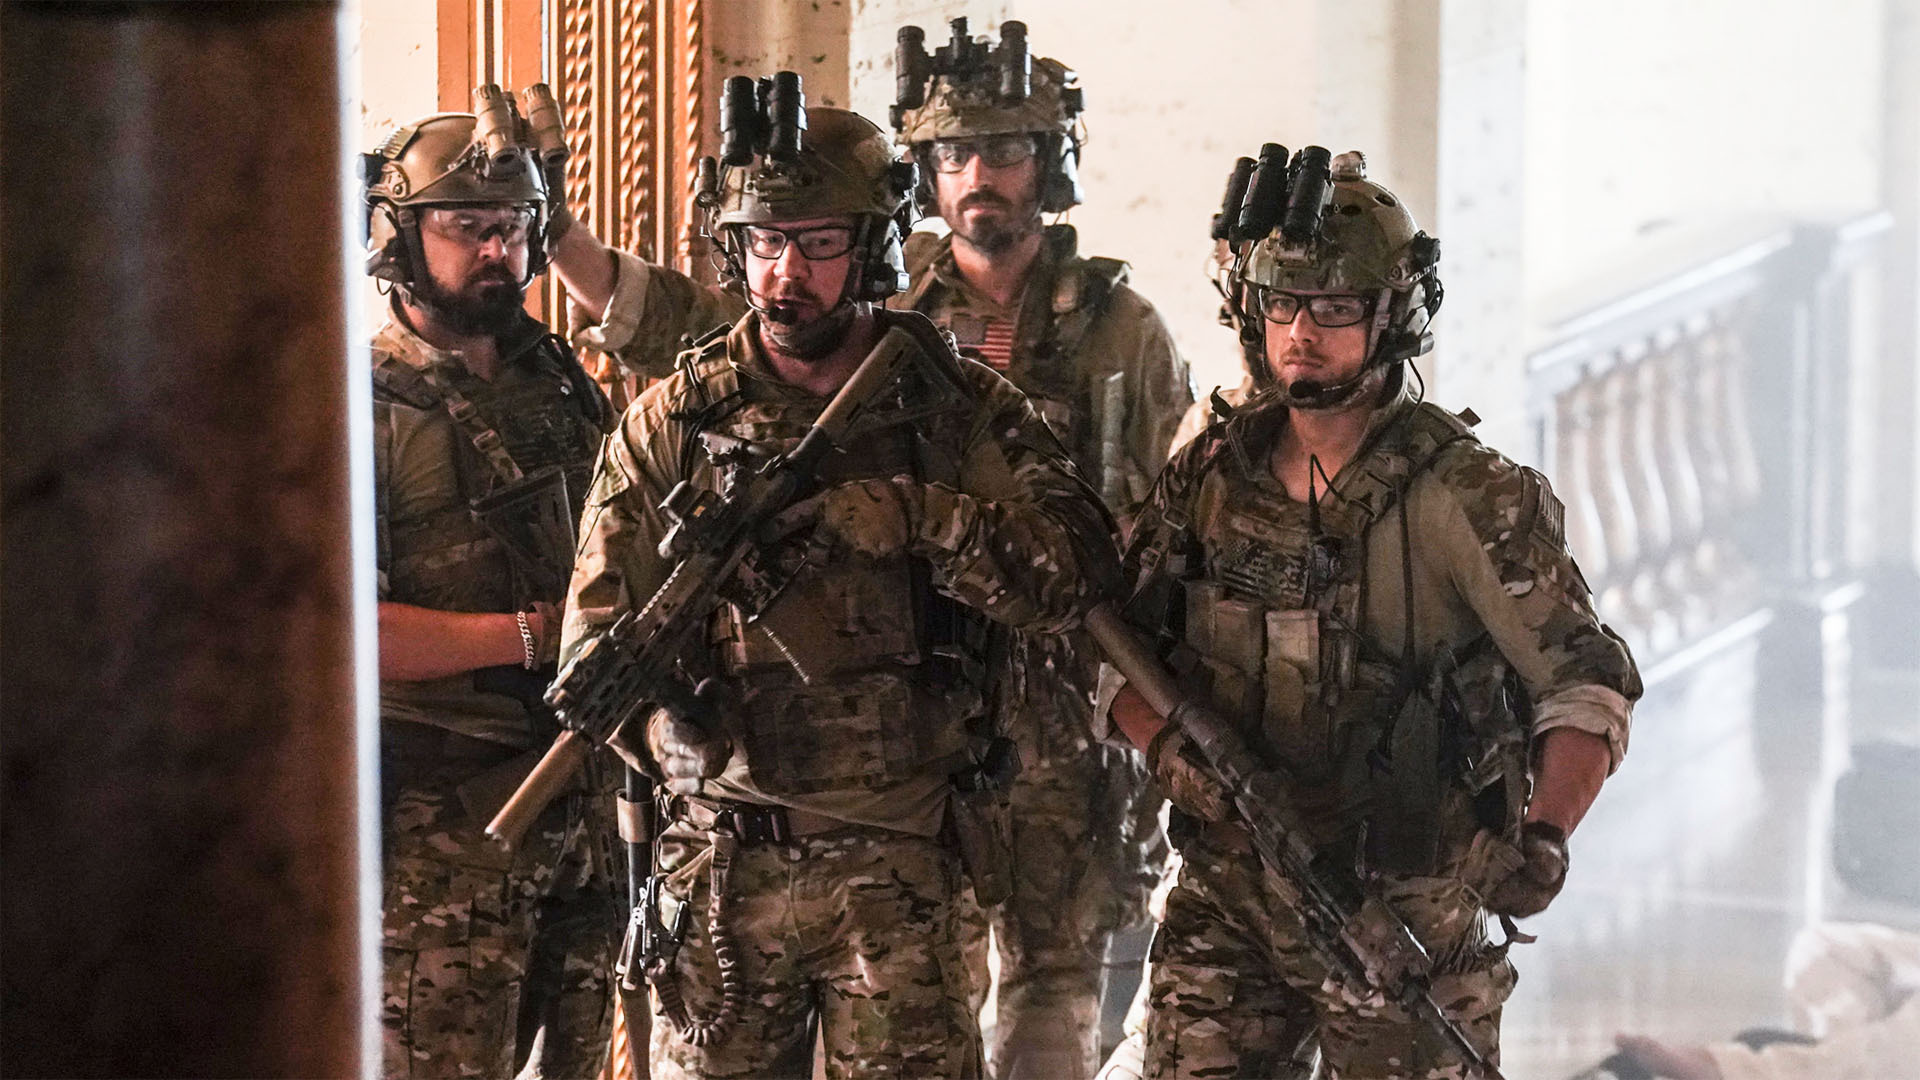 Watch SEAL Team Season 2 Episode 3: The Worst of Conditions - Full show on  CBS All Access